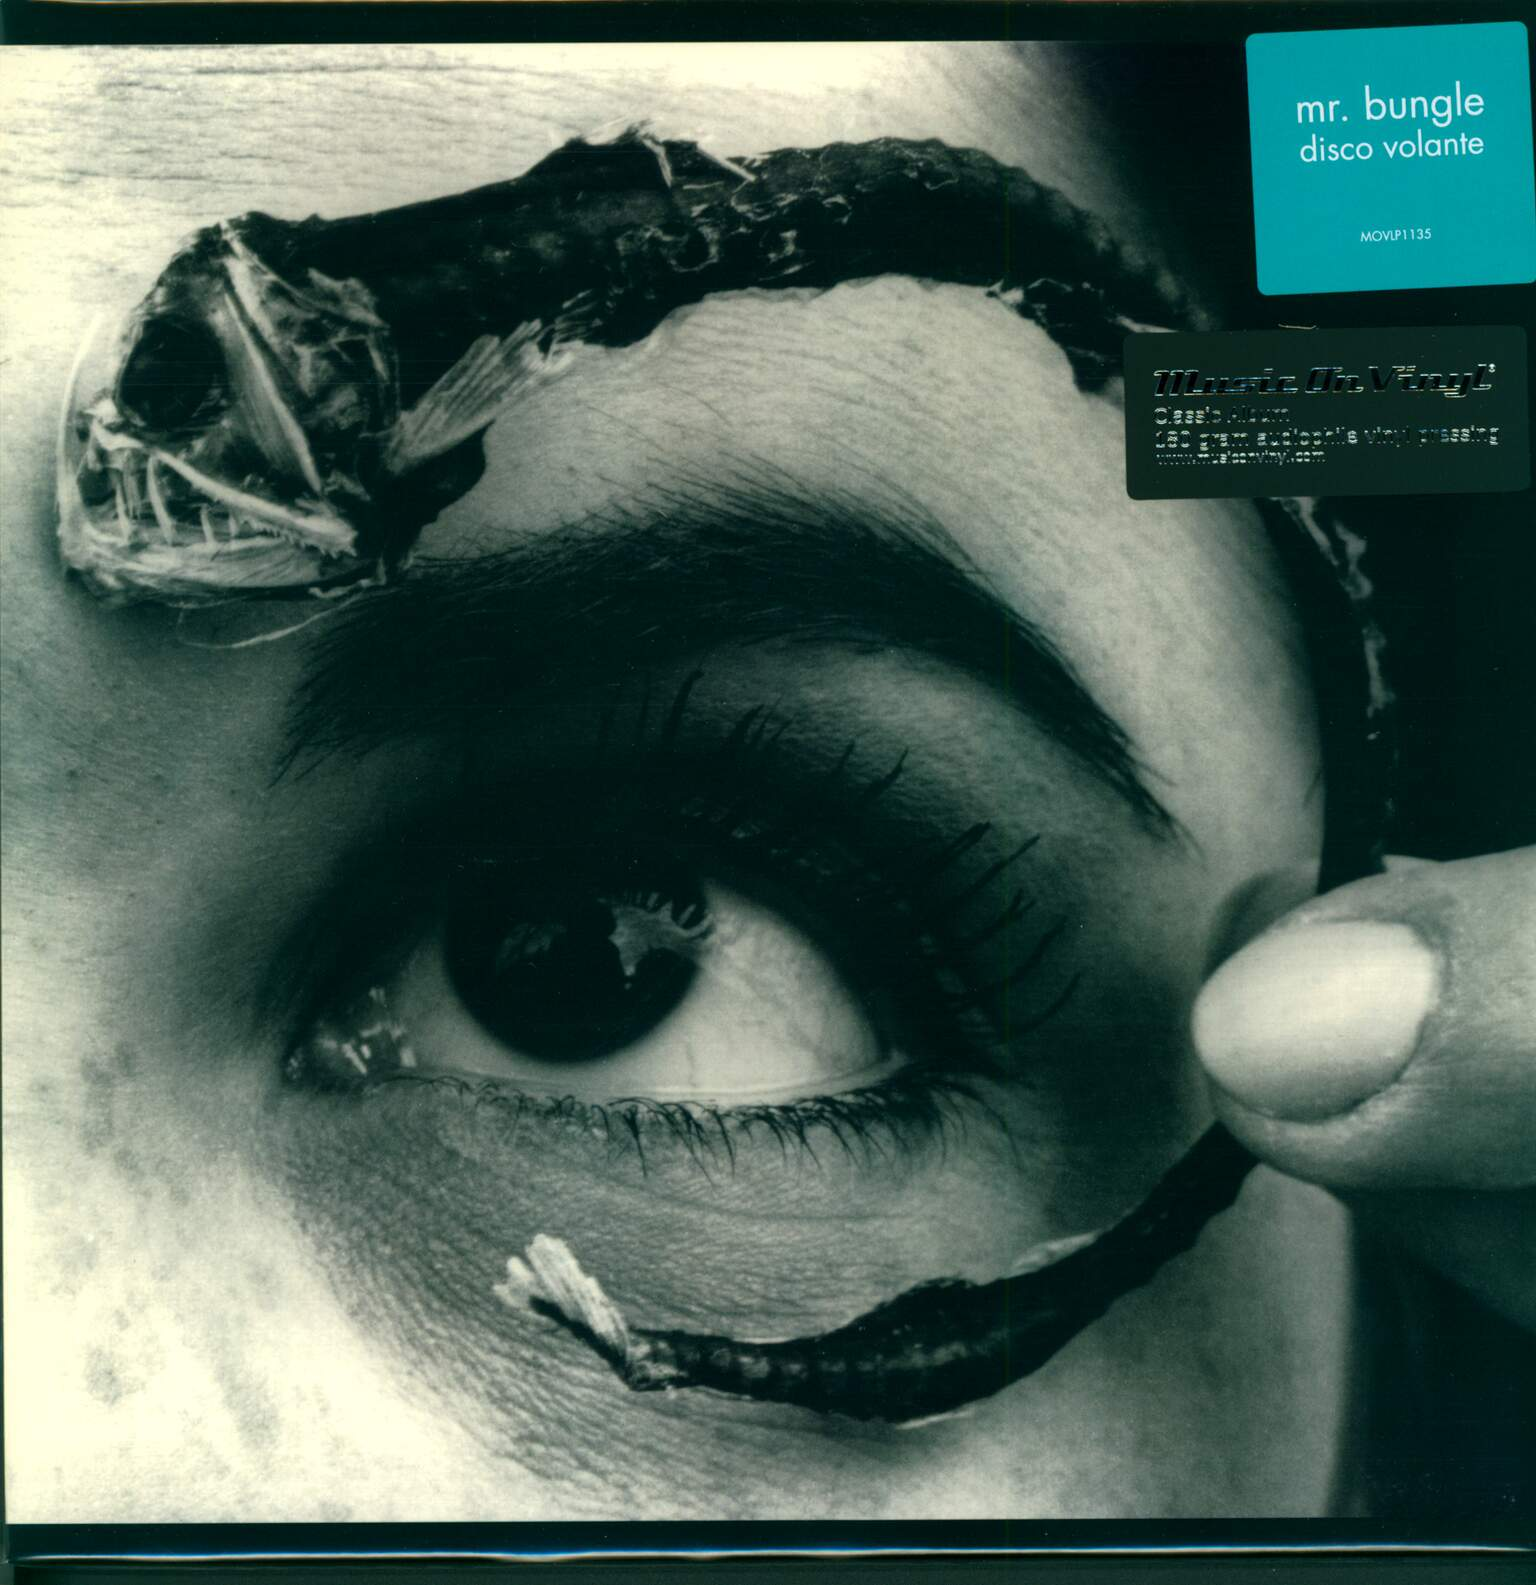 Mr Bungle: Disco Volante, 1×LP (Vinyl)